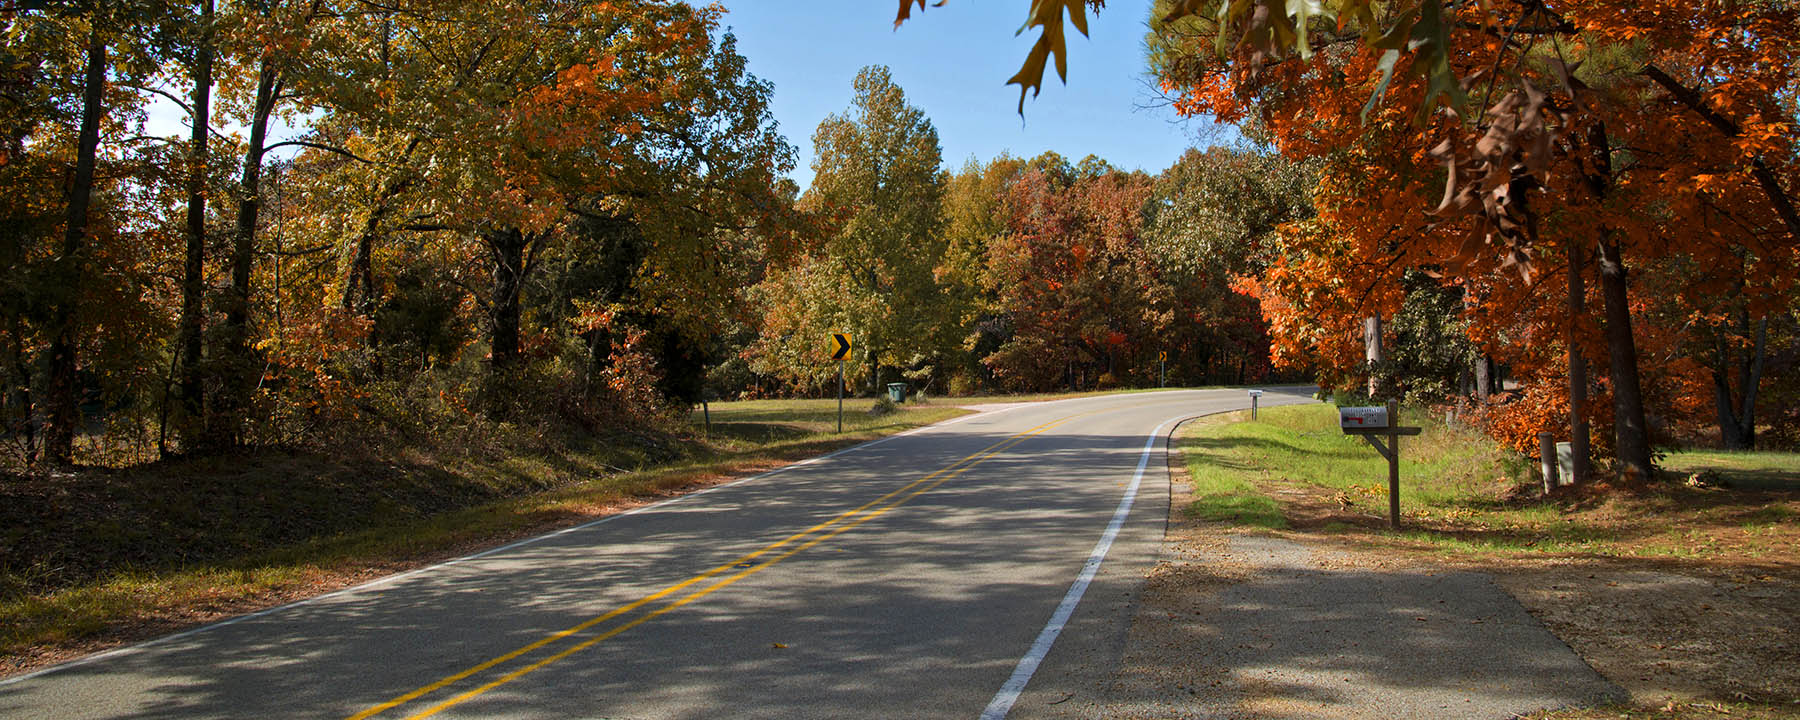 Arkansas-Good-Roads-Foundation-Slider-Image-6